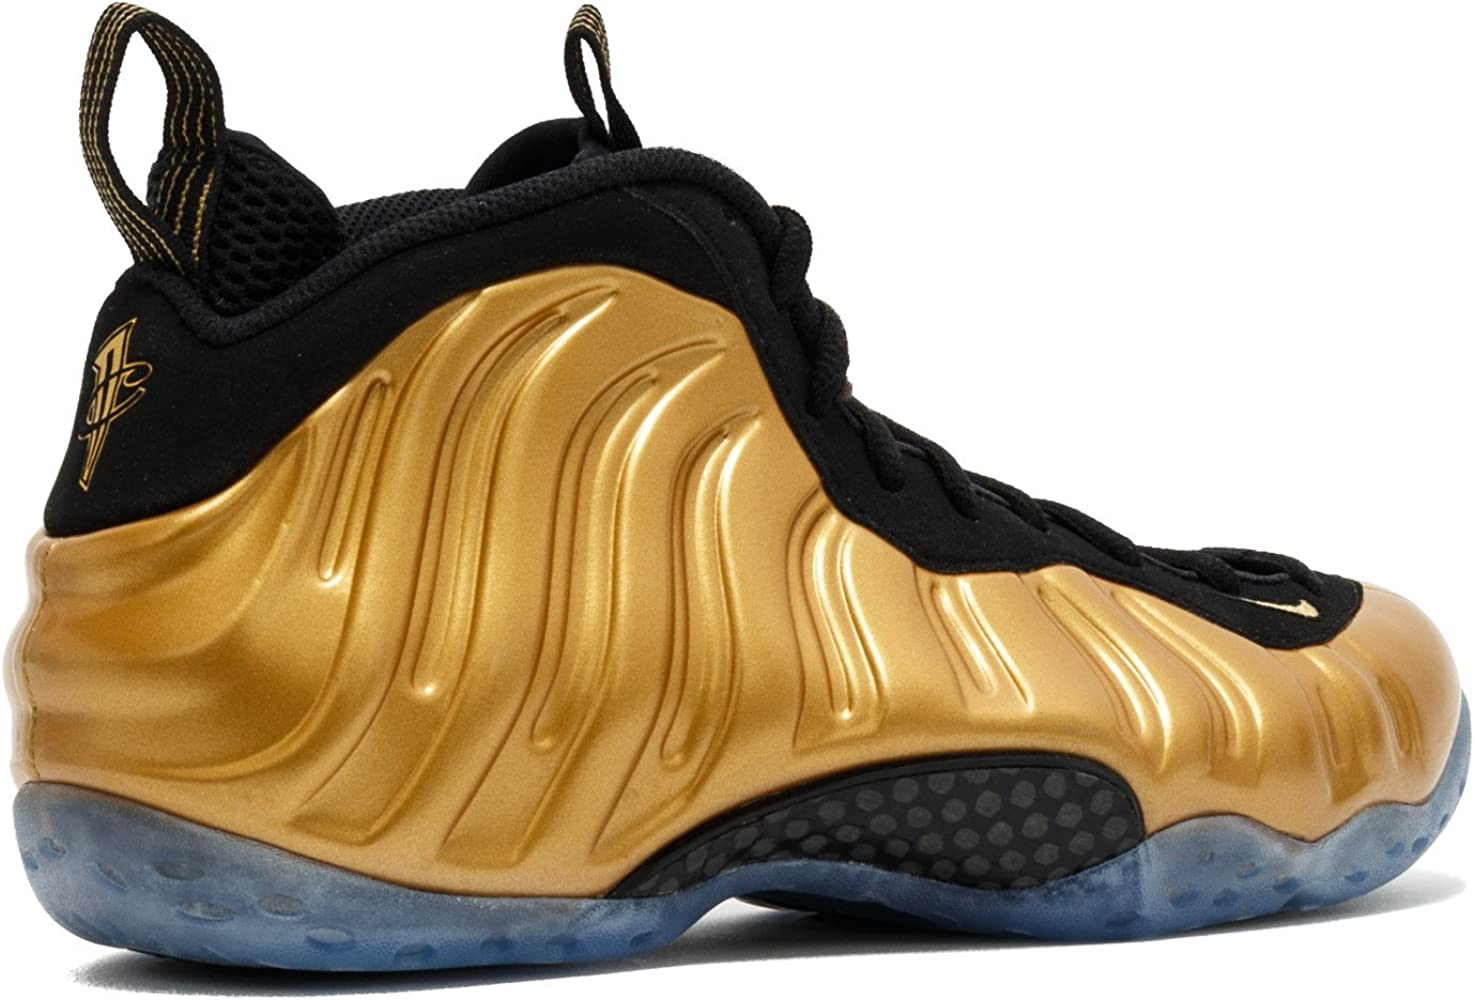 Supreme x Nike Air Foamposite OneOfficial Images + Release ...